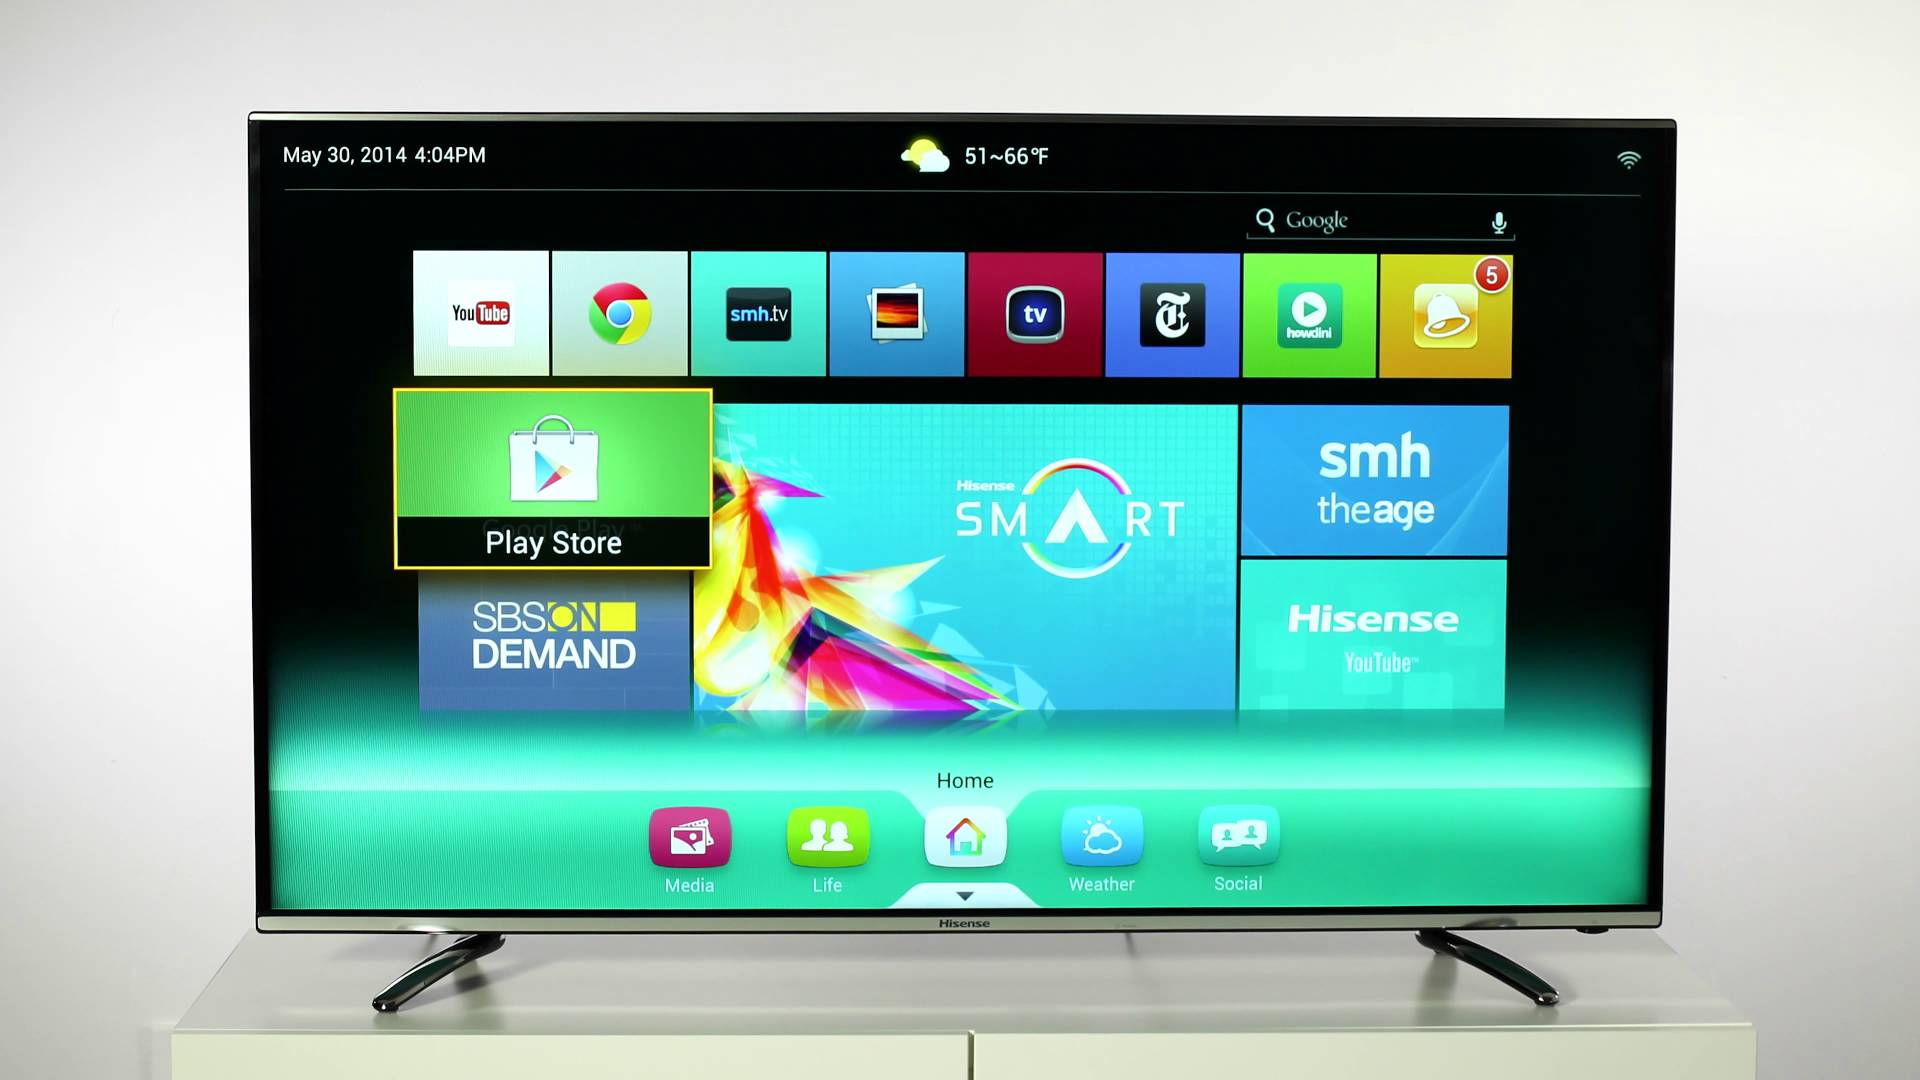 apps not working on hisense tv